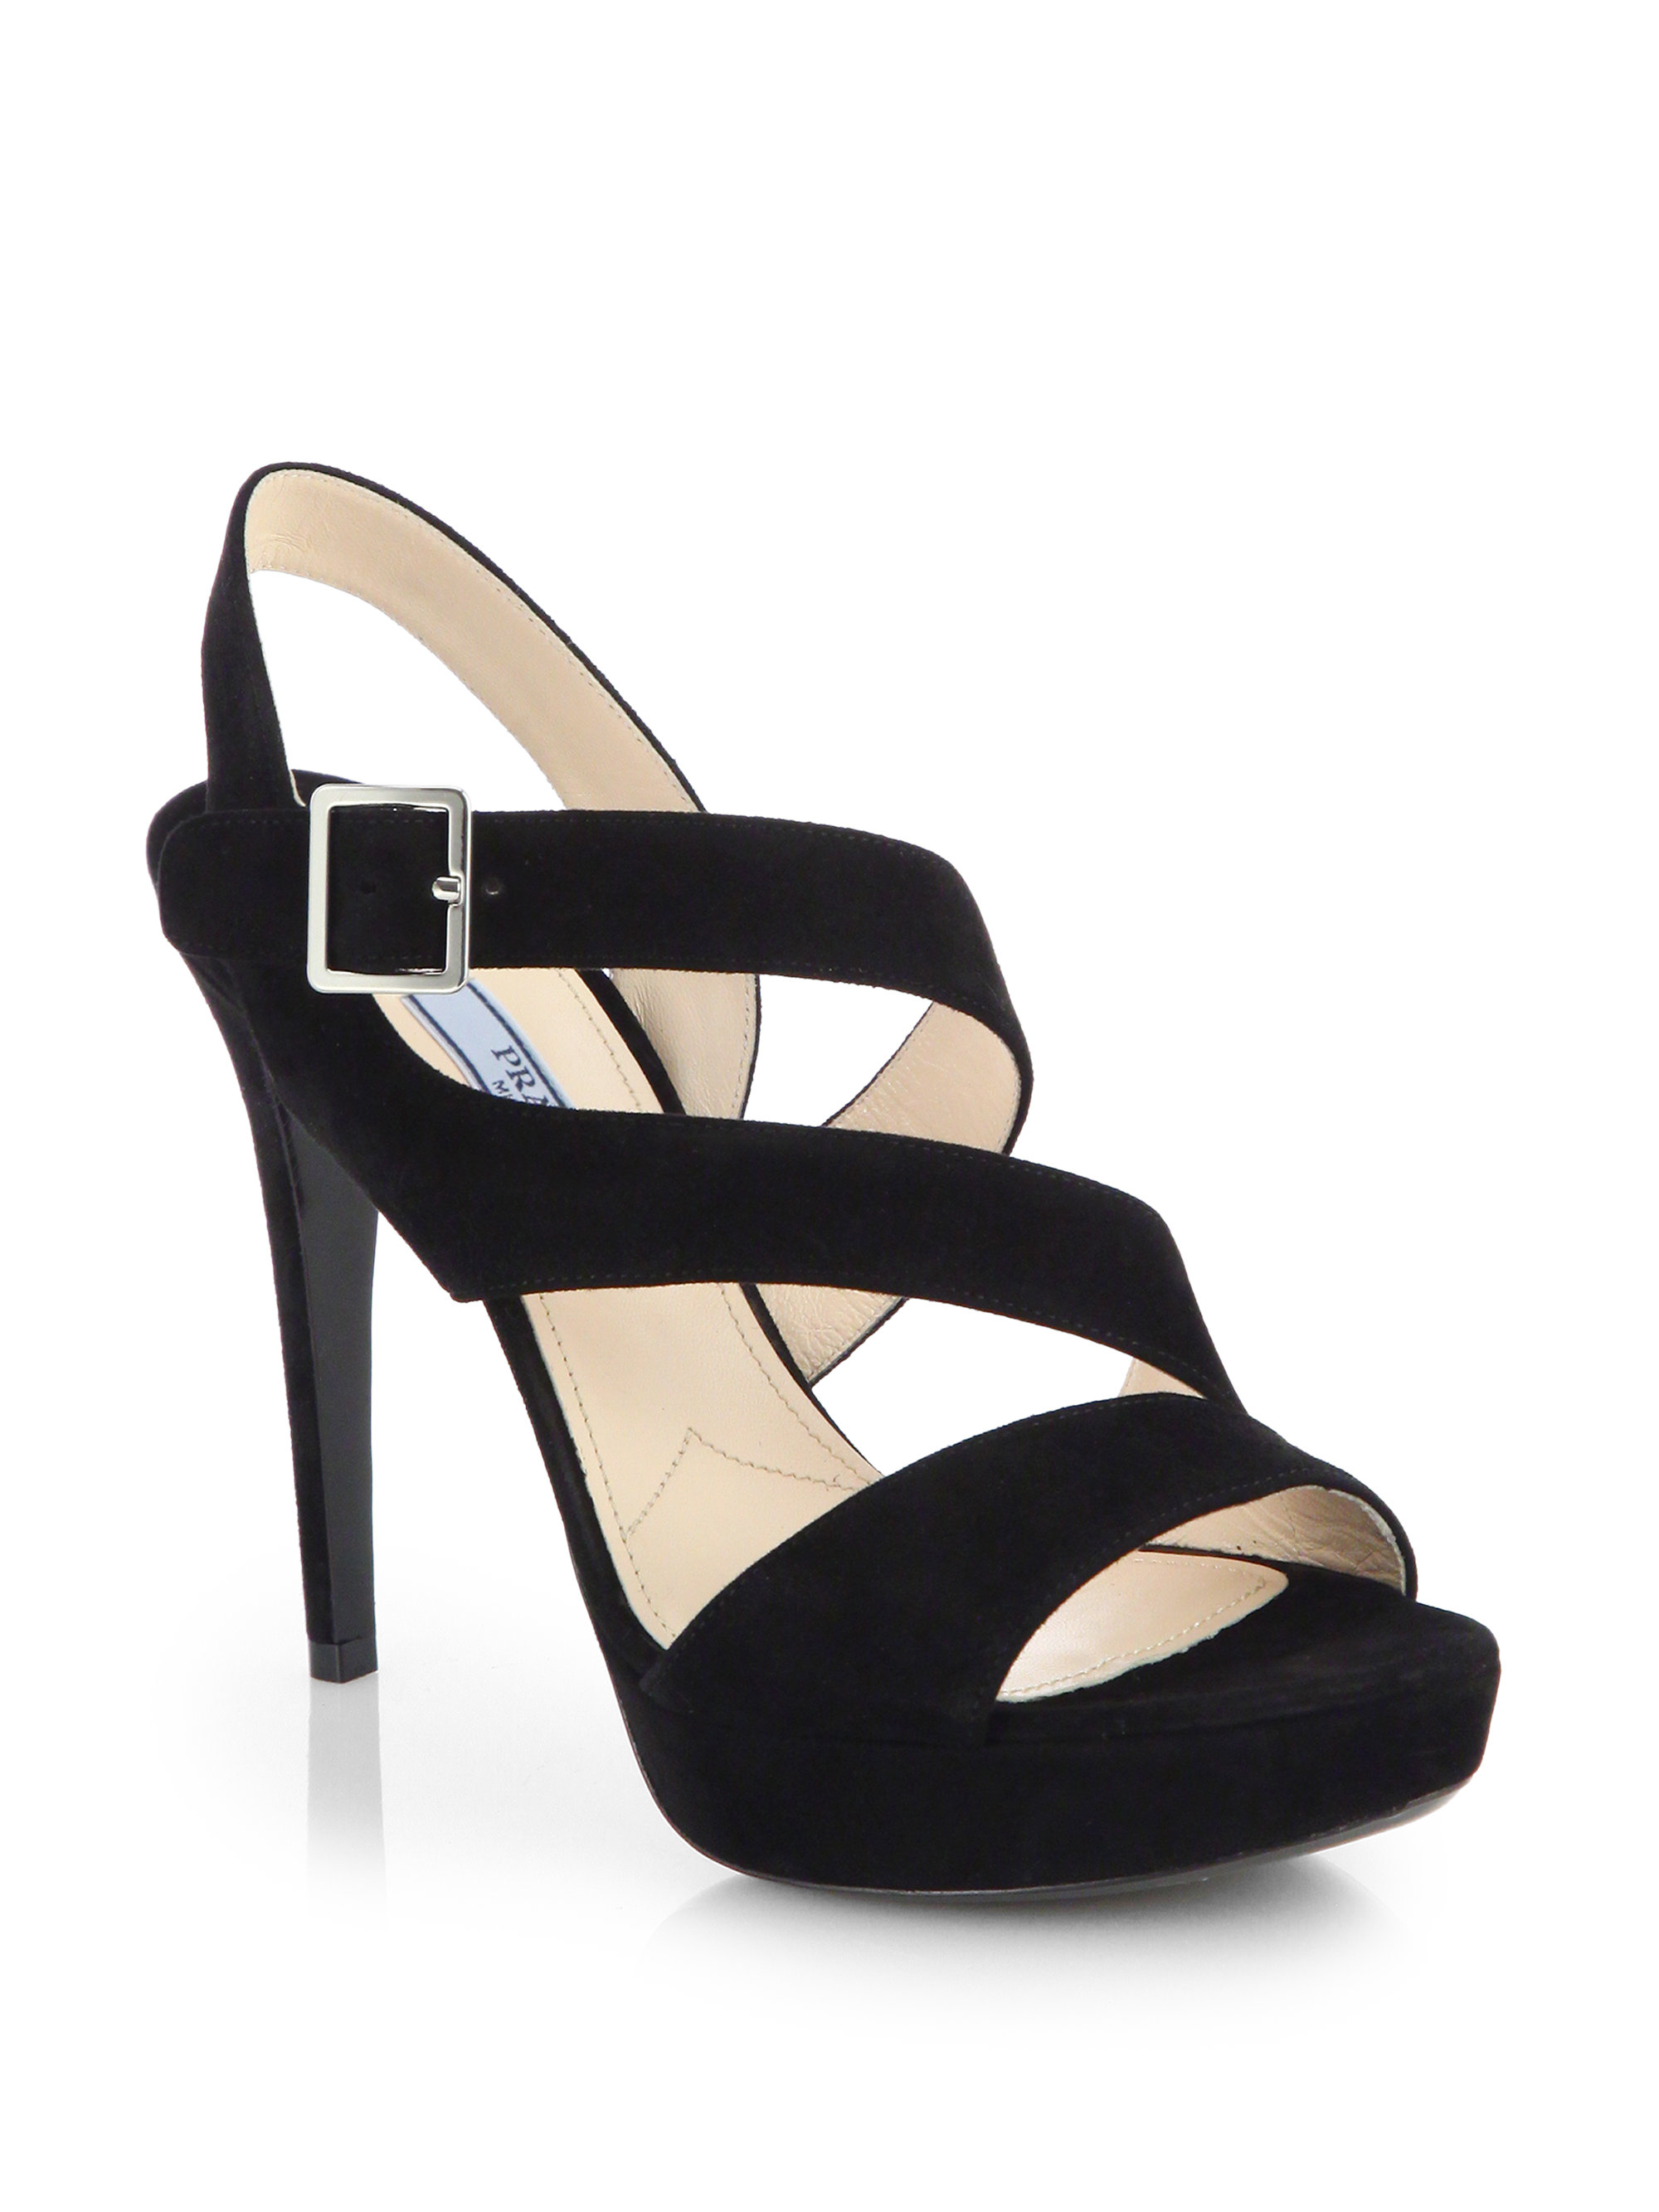 Sandals - Platform Sandals Suede Nero - black - Sandals for ladies Prada T2woPUkd